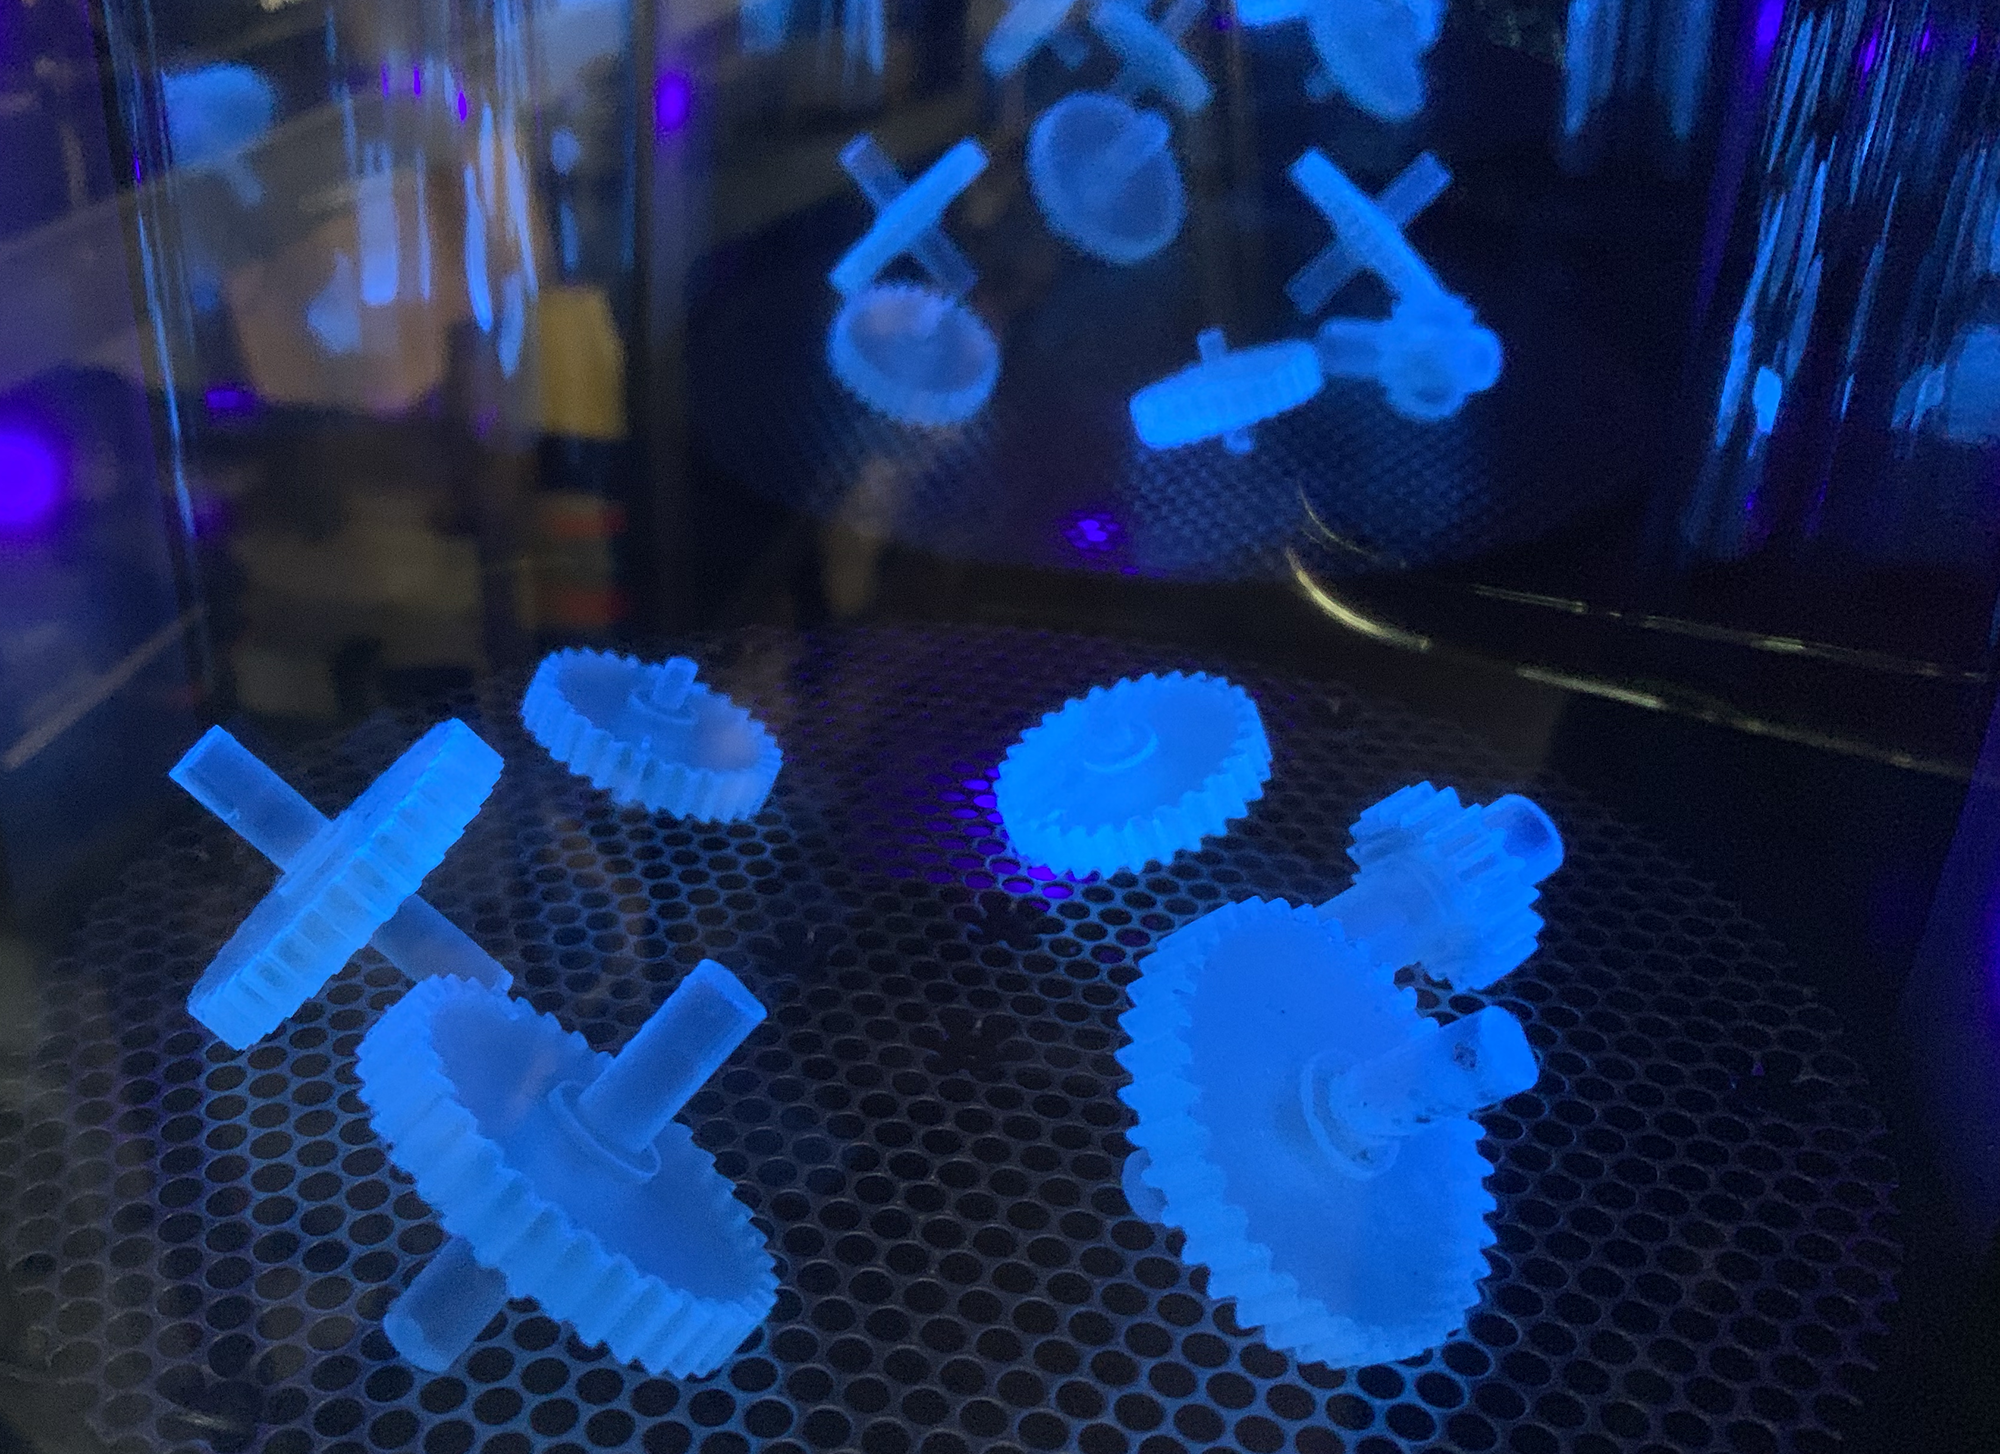 3D printed gears under the glow of 405 nm light in Formlabs Form Cure post-curing chamber.